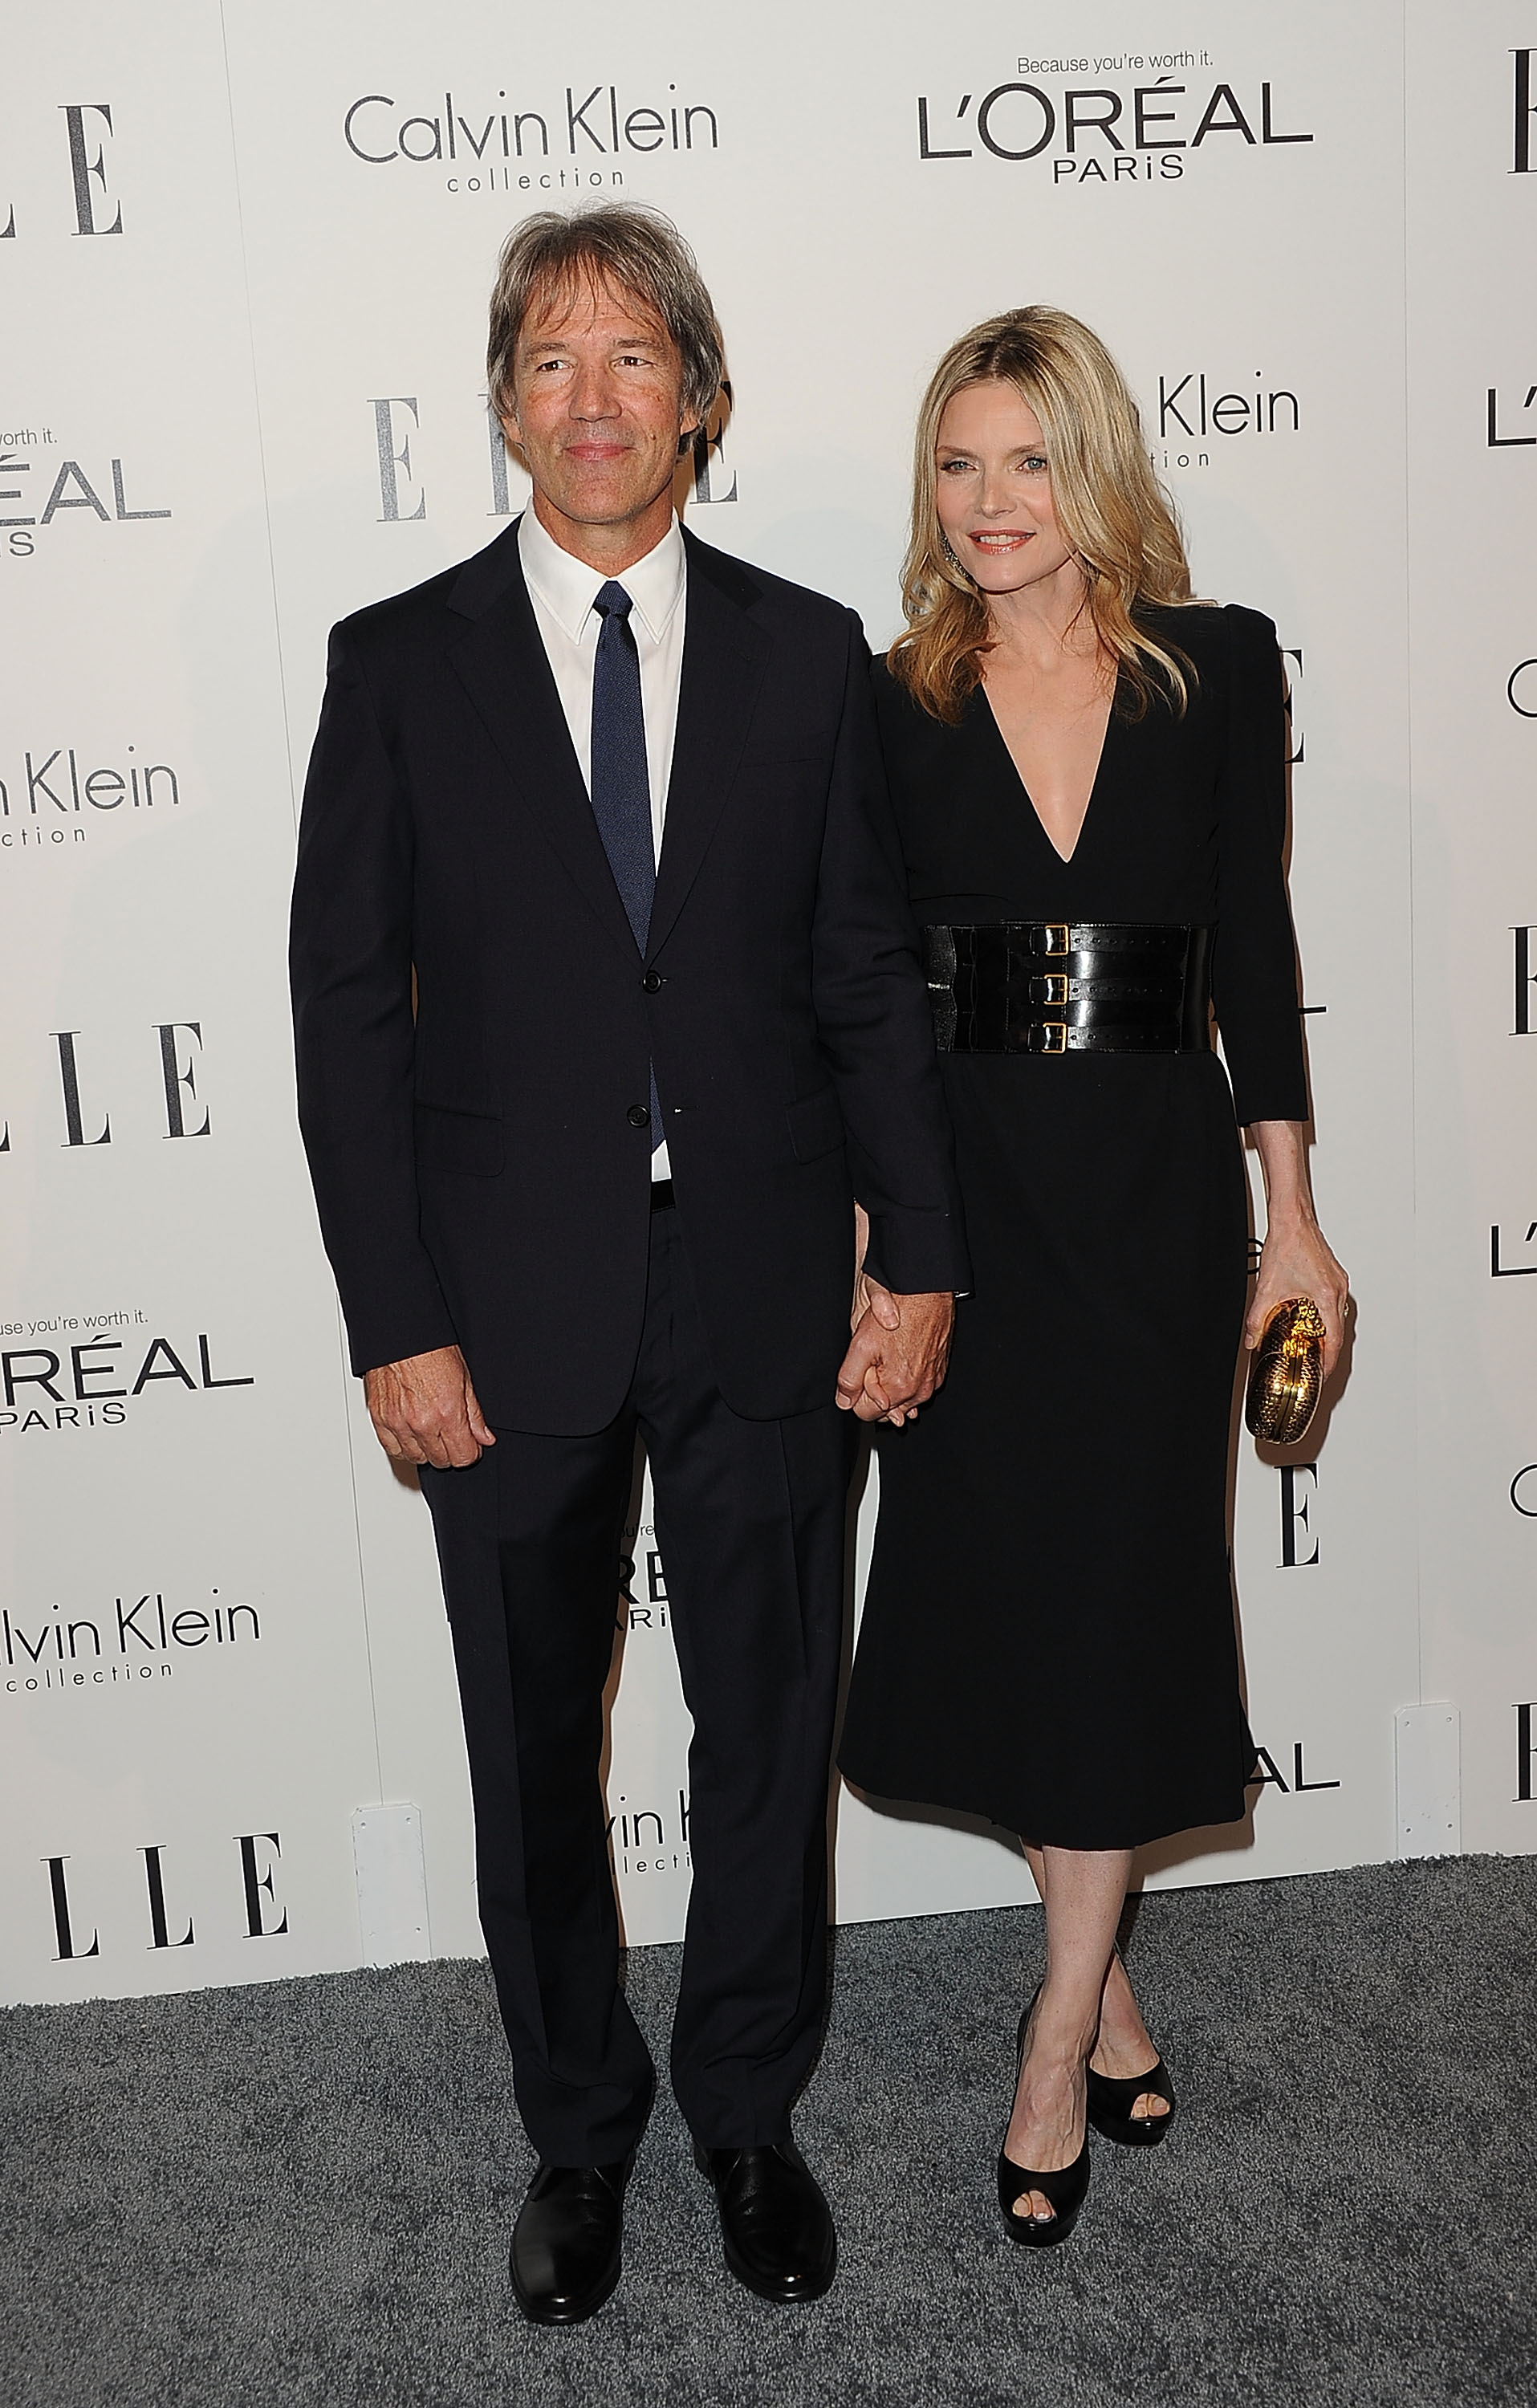 Michelle Pfeiffer walked down the red carpet with David Kelley.